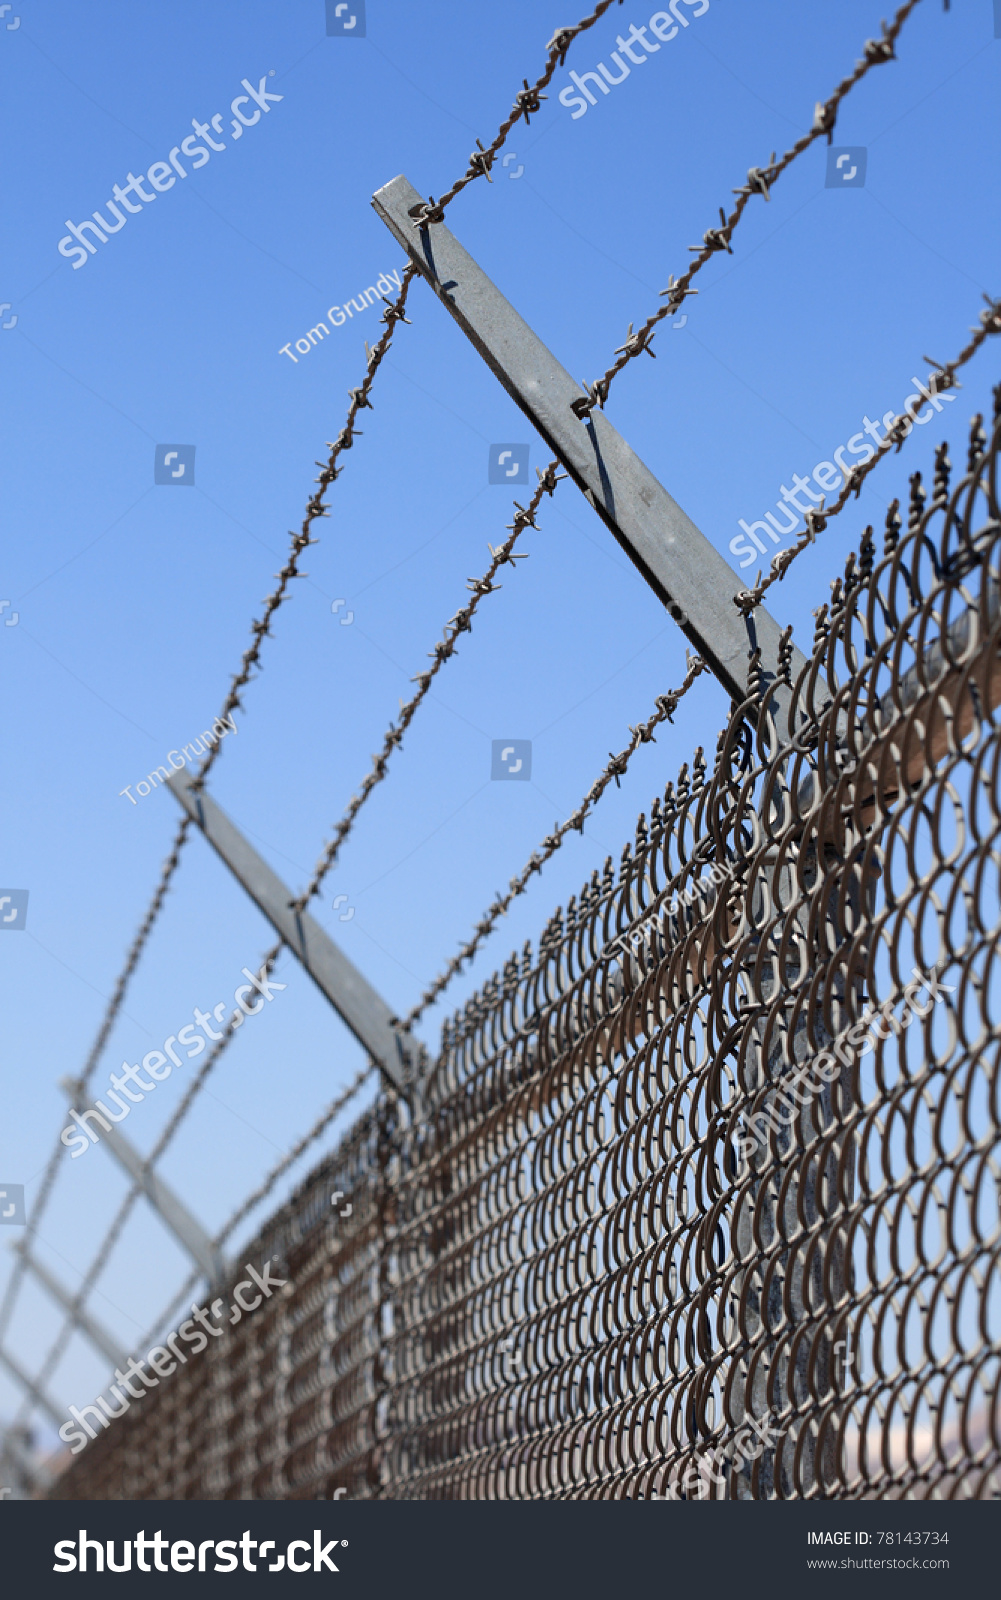 Contemporary Razor Wire Regulations Photo - Electrical Diagram Ideas ...